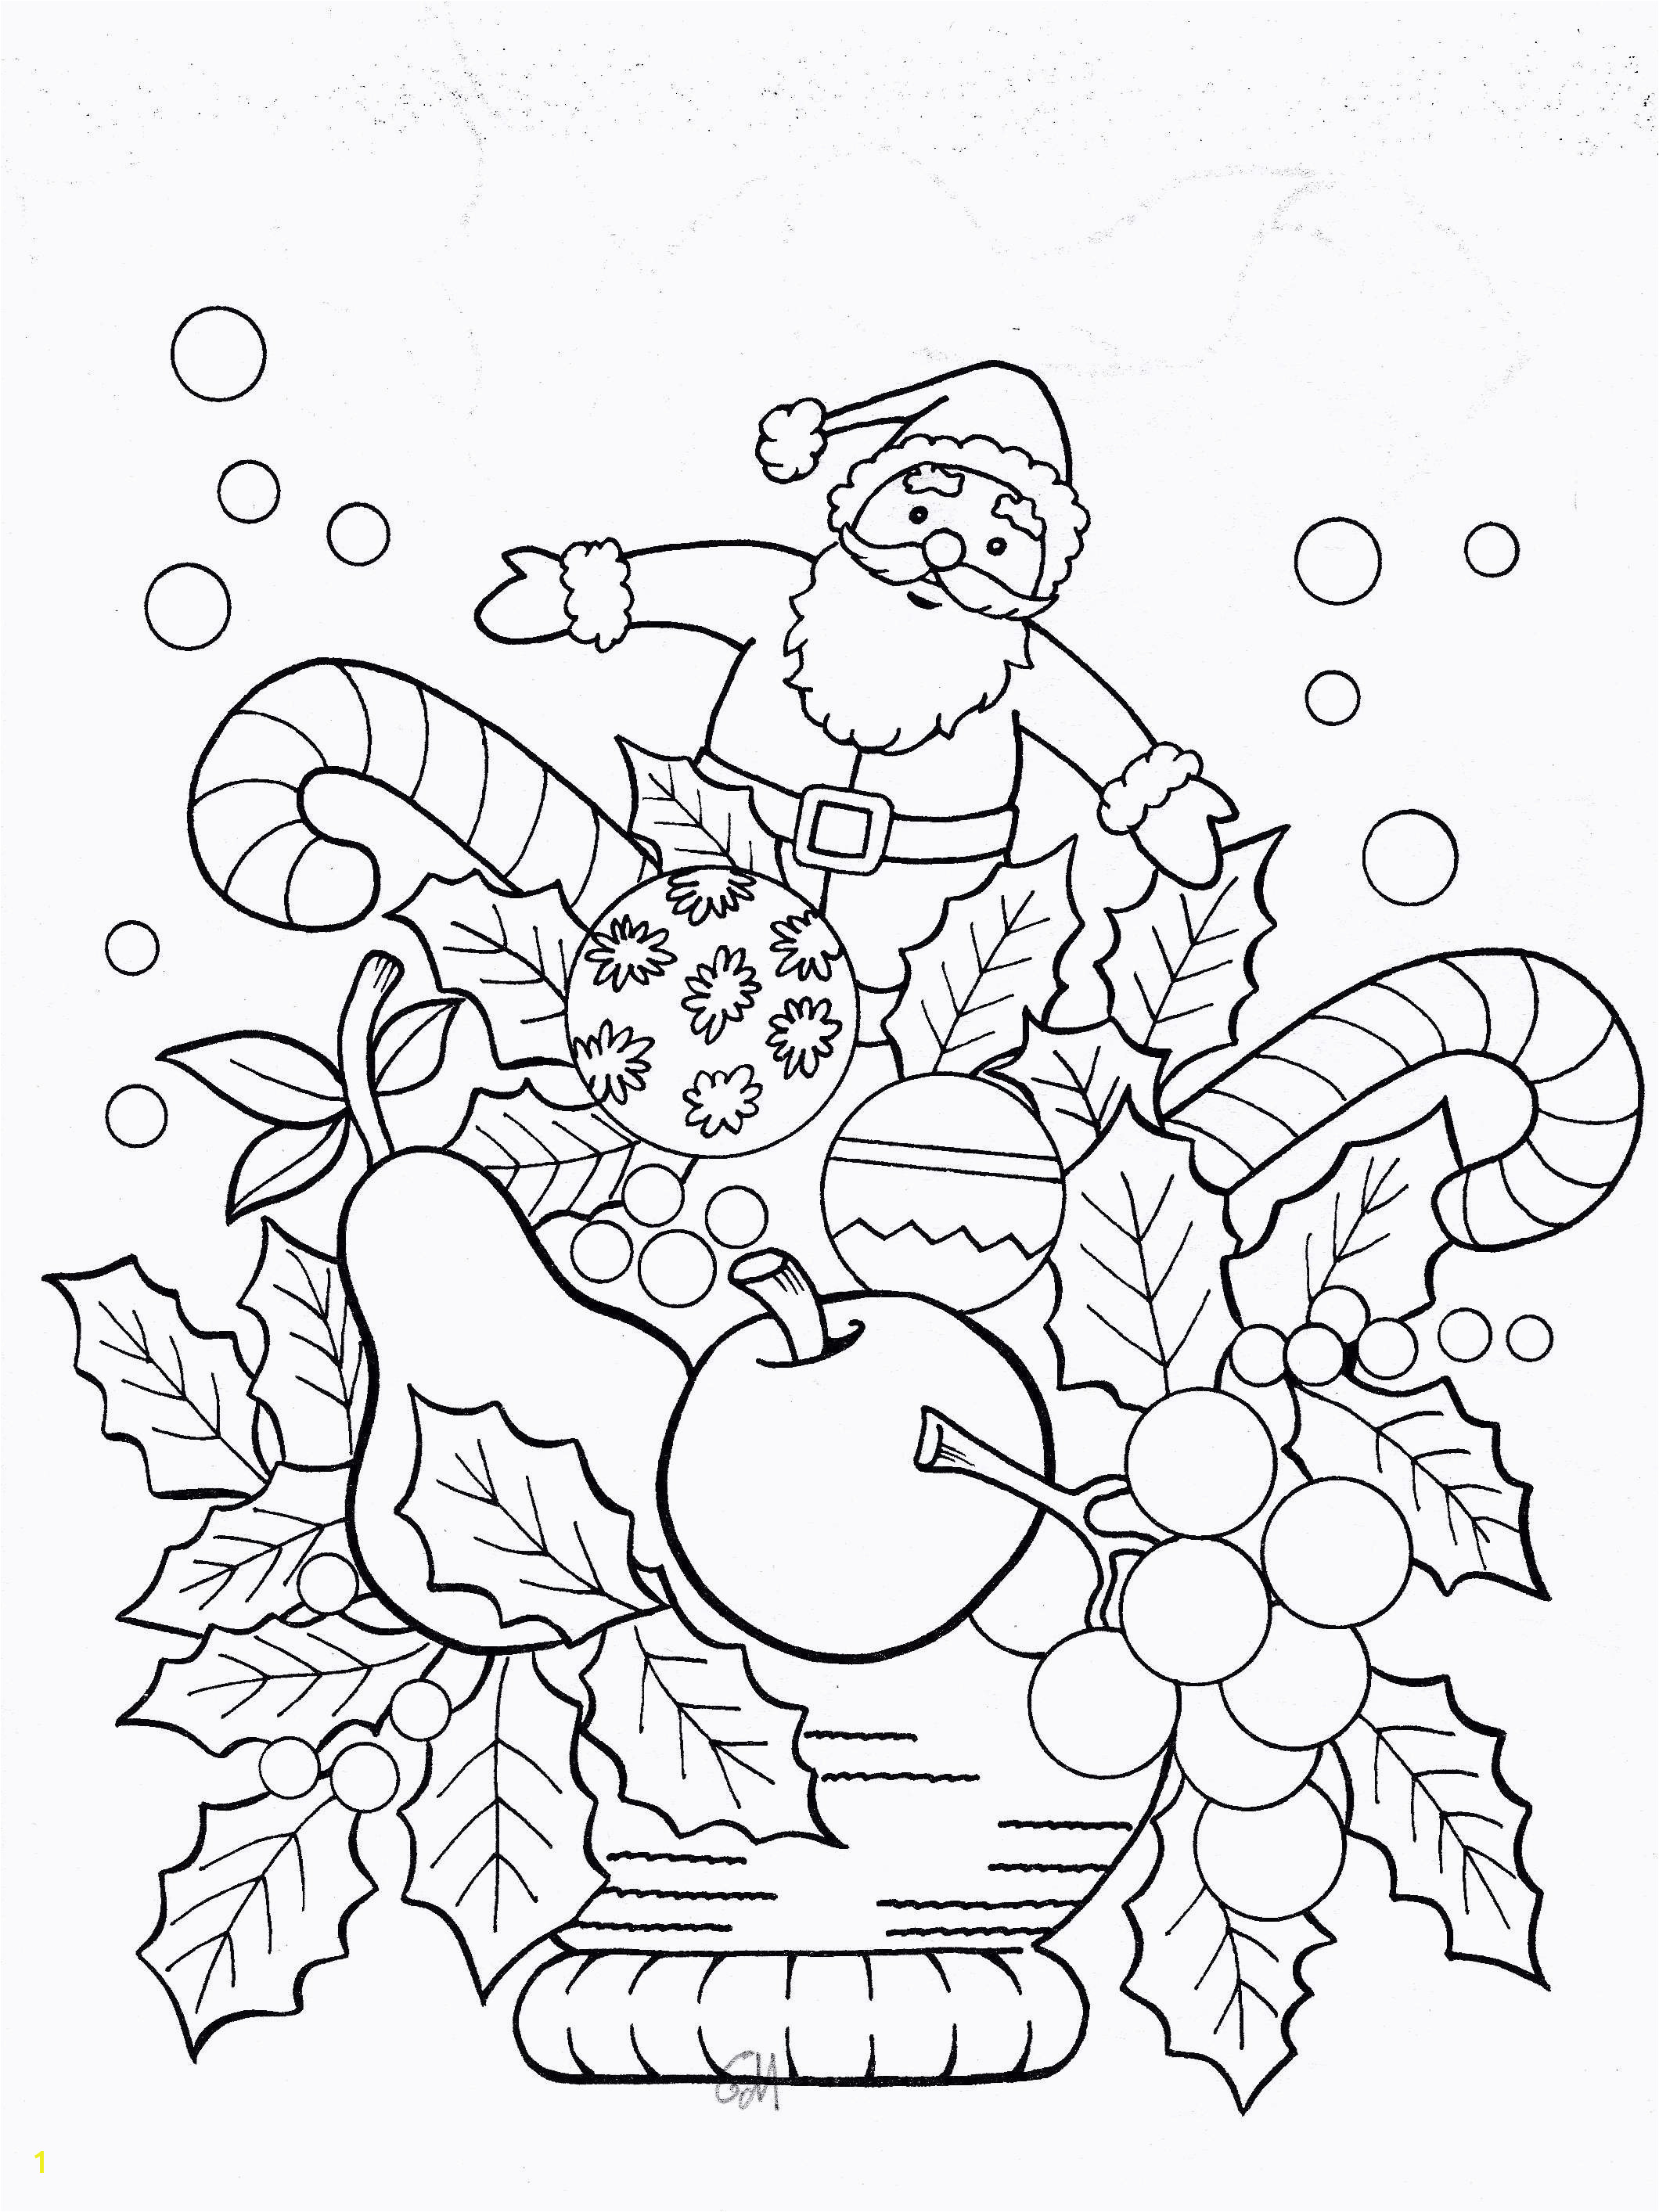 Christmas Coloring Pages for Printable New Cool Coloring Printables 0d – Fun Time – Coloring Sheets